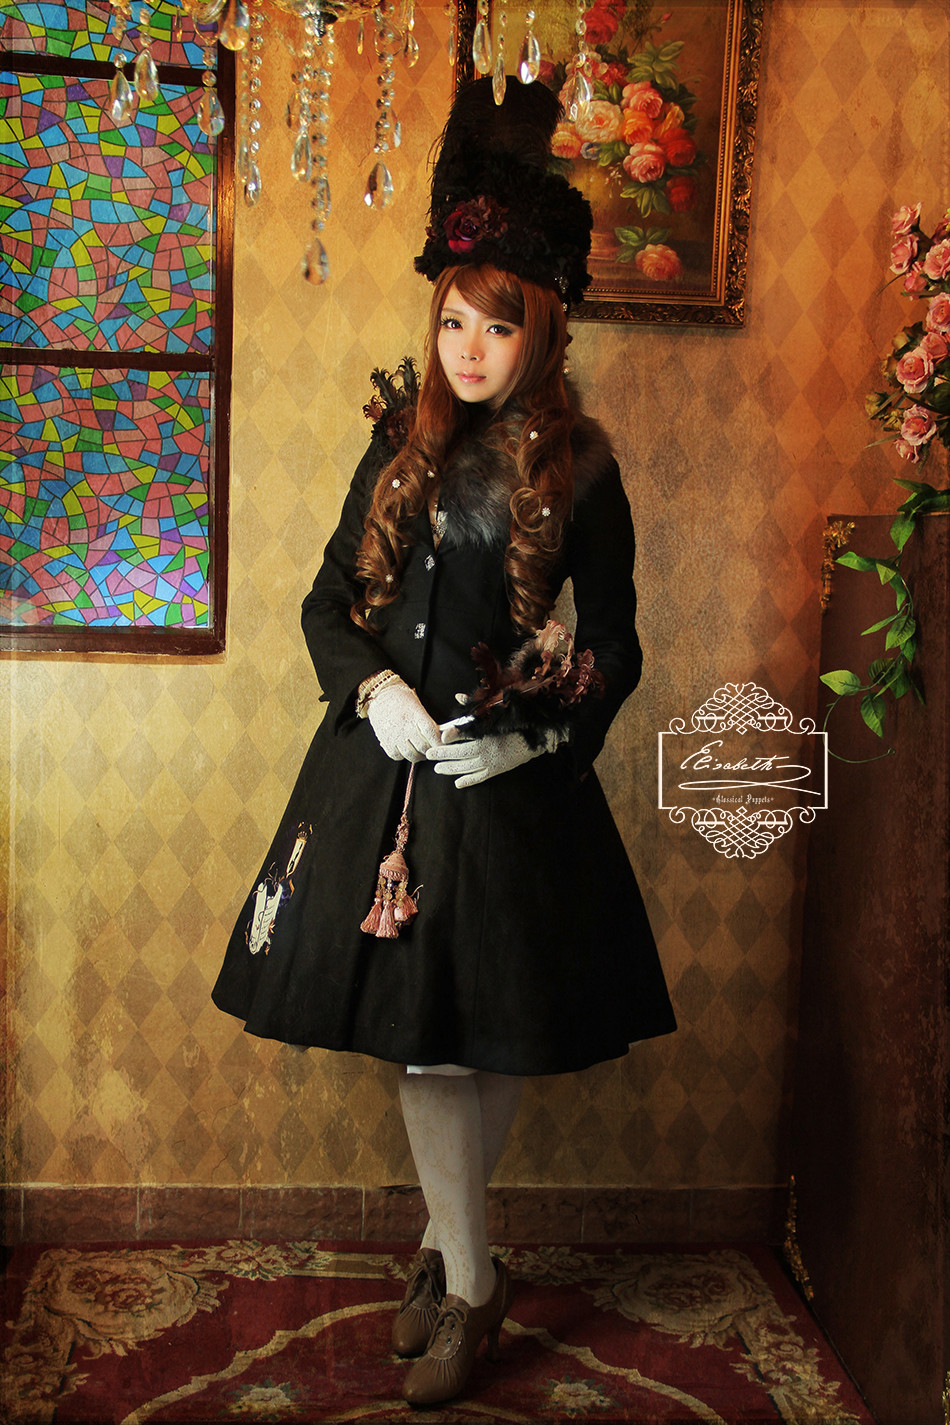 Elisabeth Embroidery Cashmere Classical Puppets Lolita Long Coat